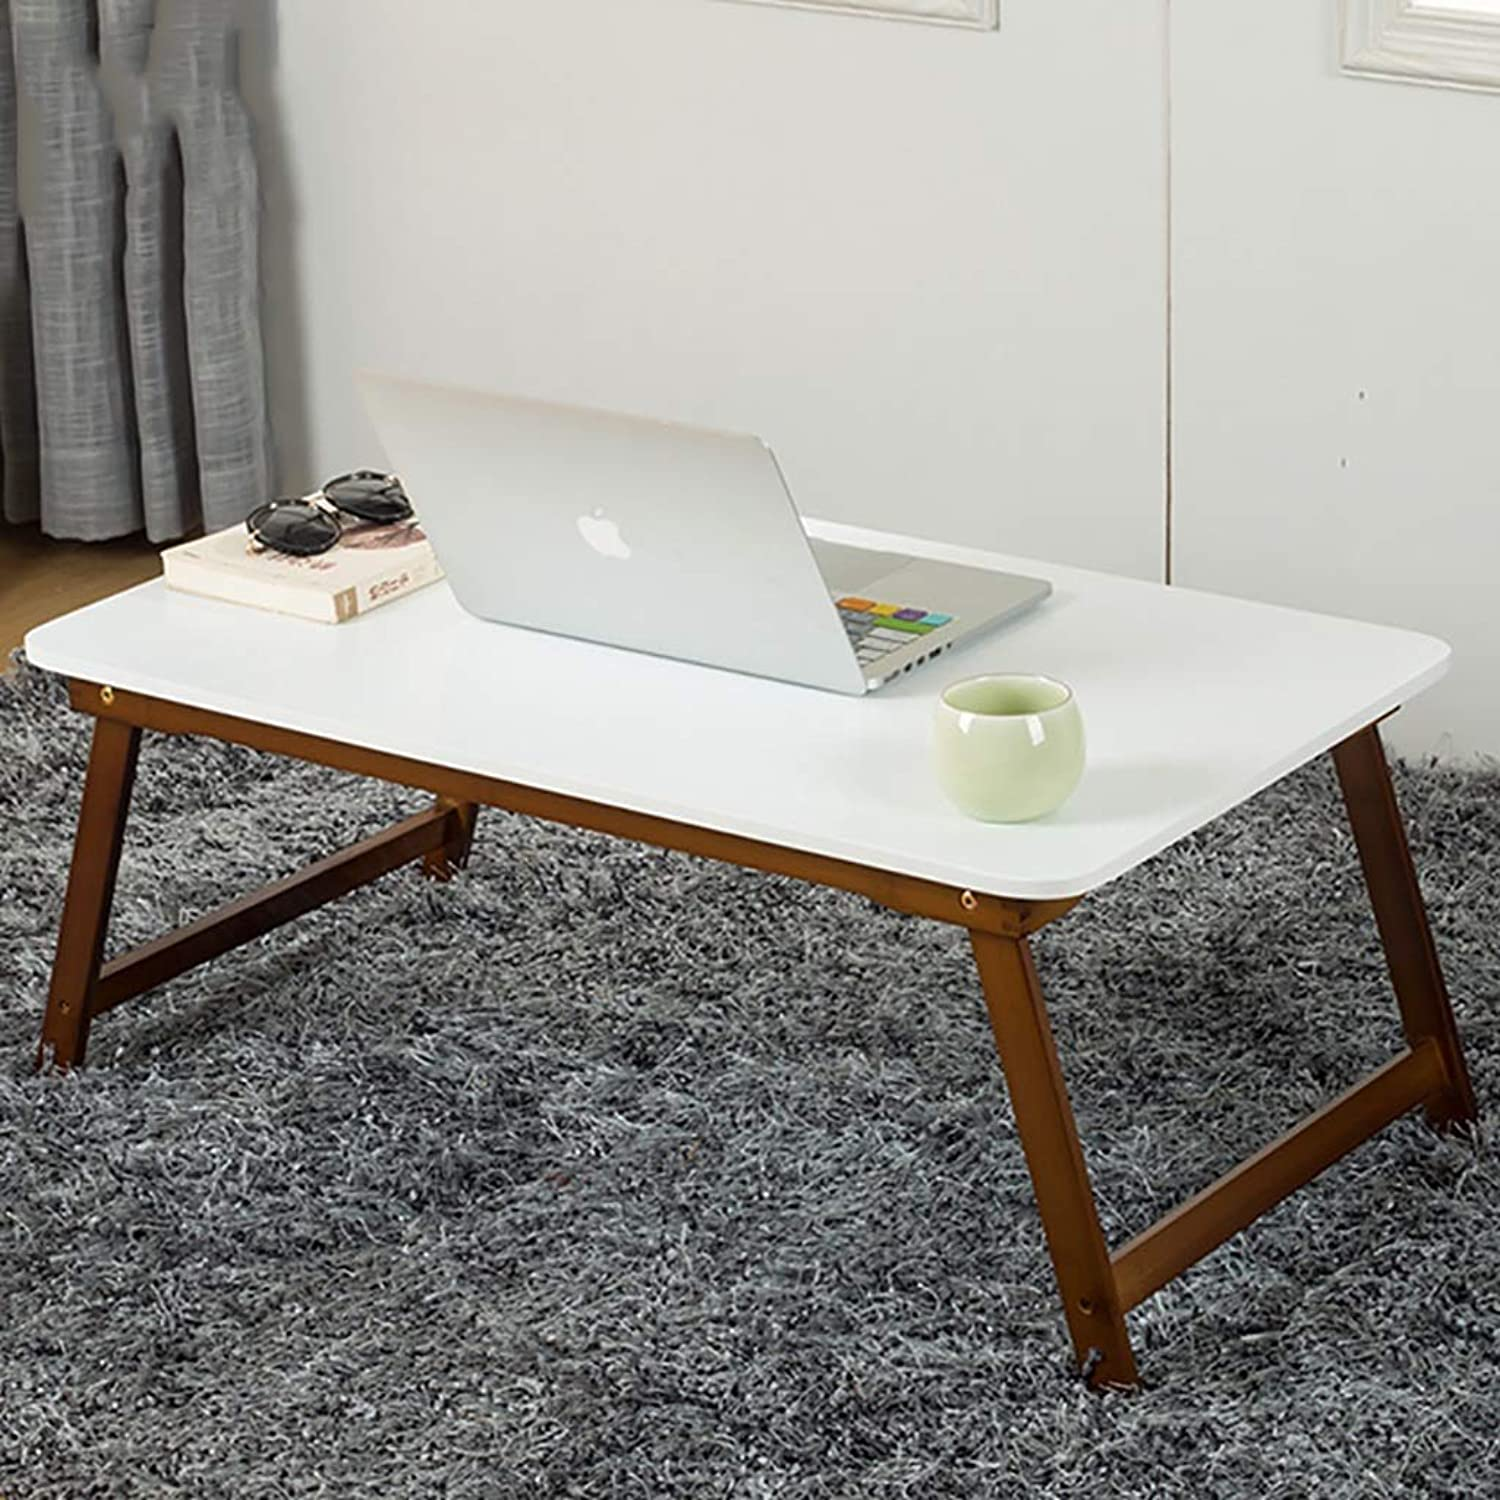 Notebook Computer Desk Lazy Desk Study Table Table Bed Foldable Small Table Simple Dorm Room (Size   60  40  25cm)